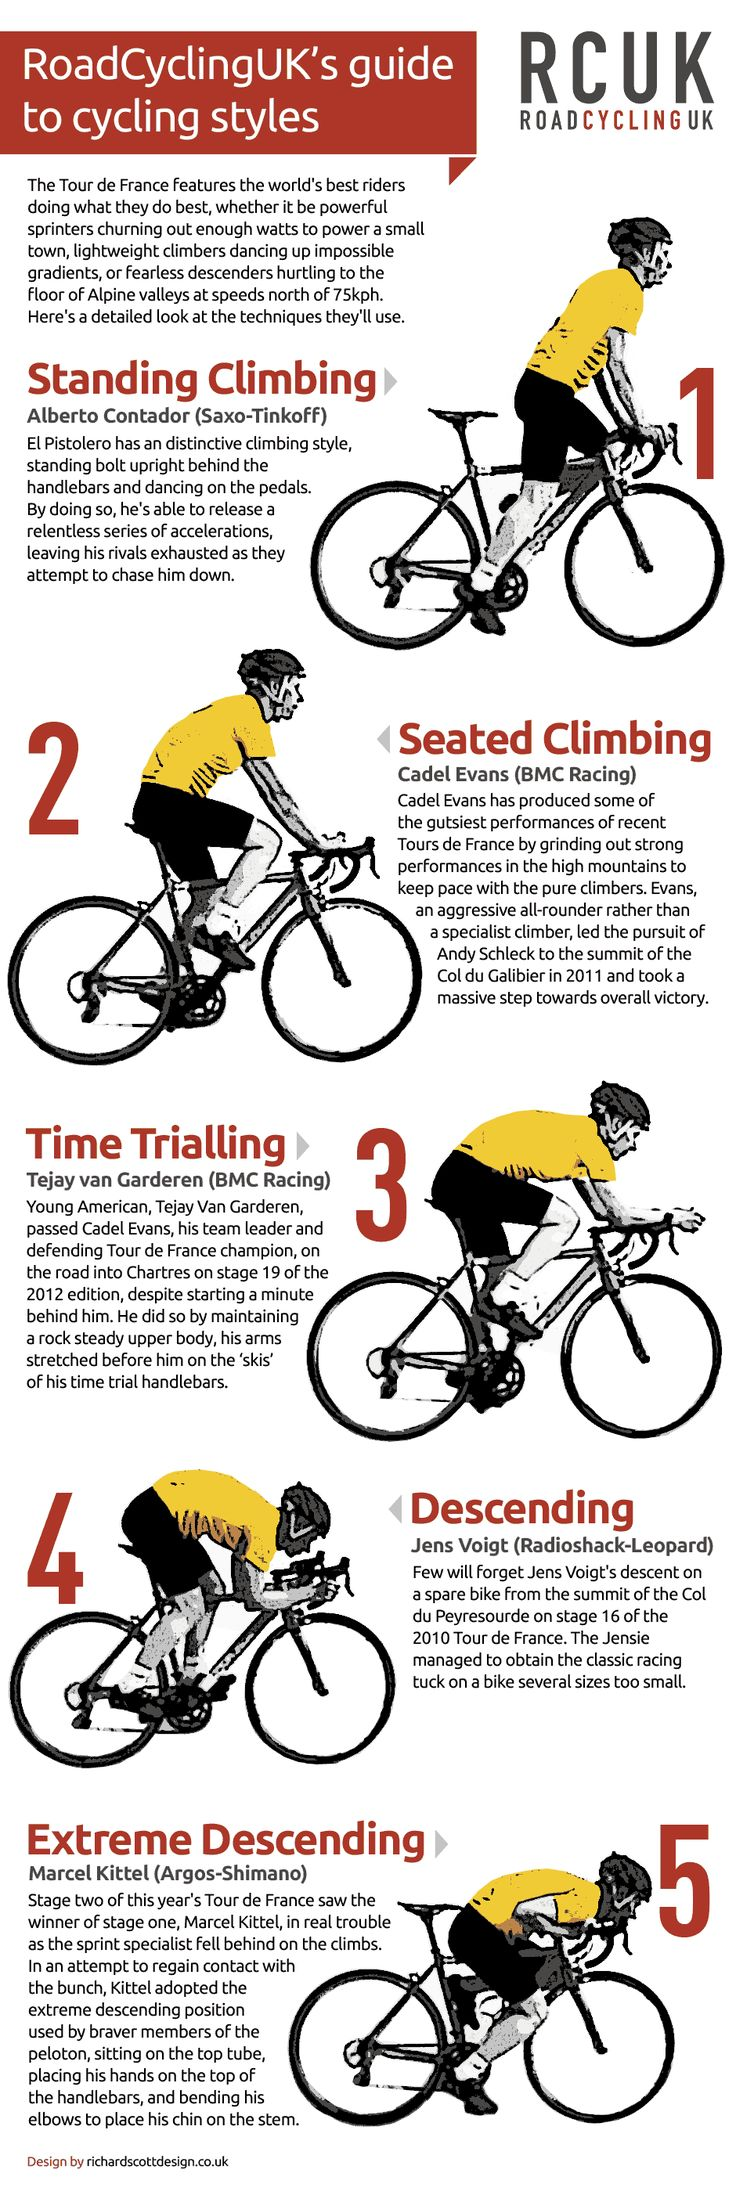 Tour de France 2013: infographic – RoadCyclingUK's guide to riding styles